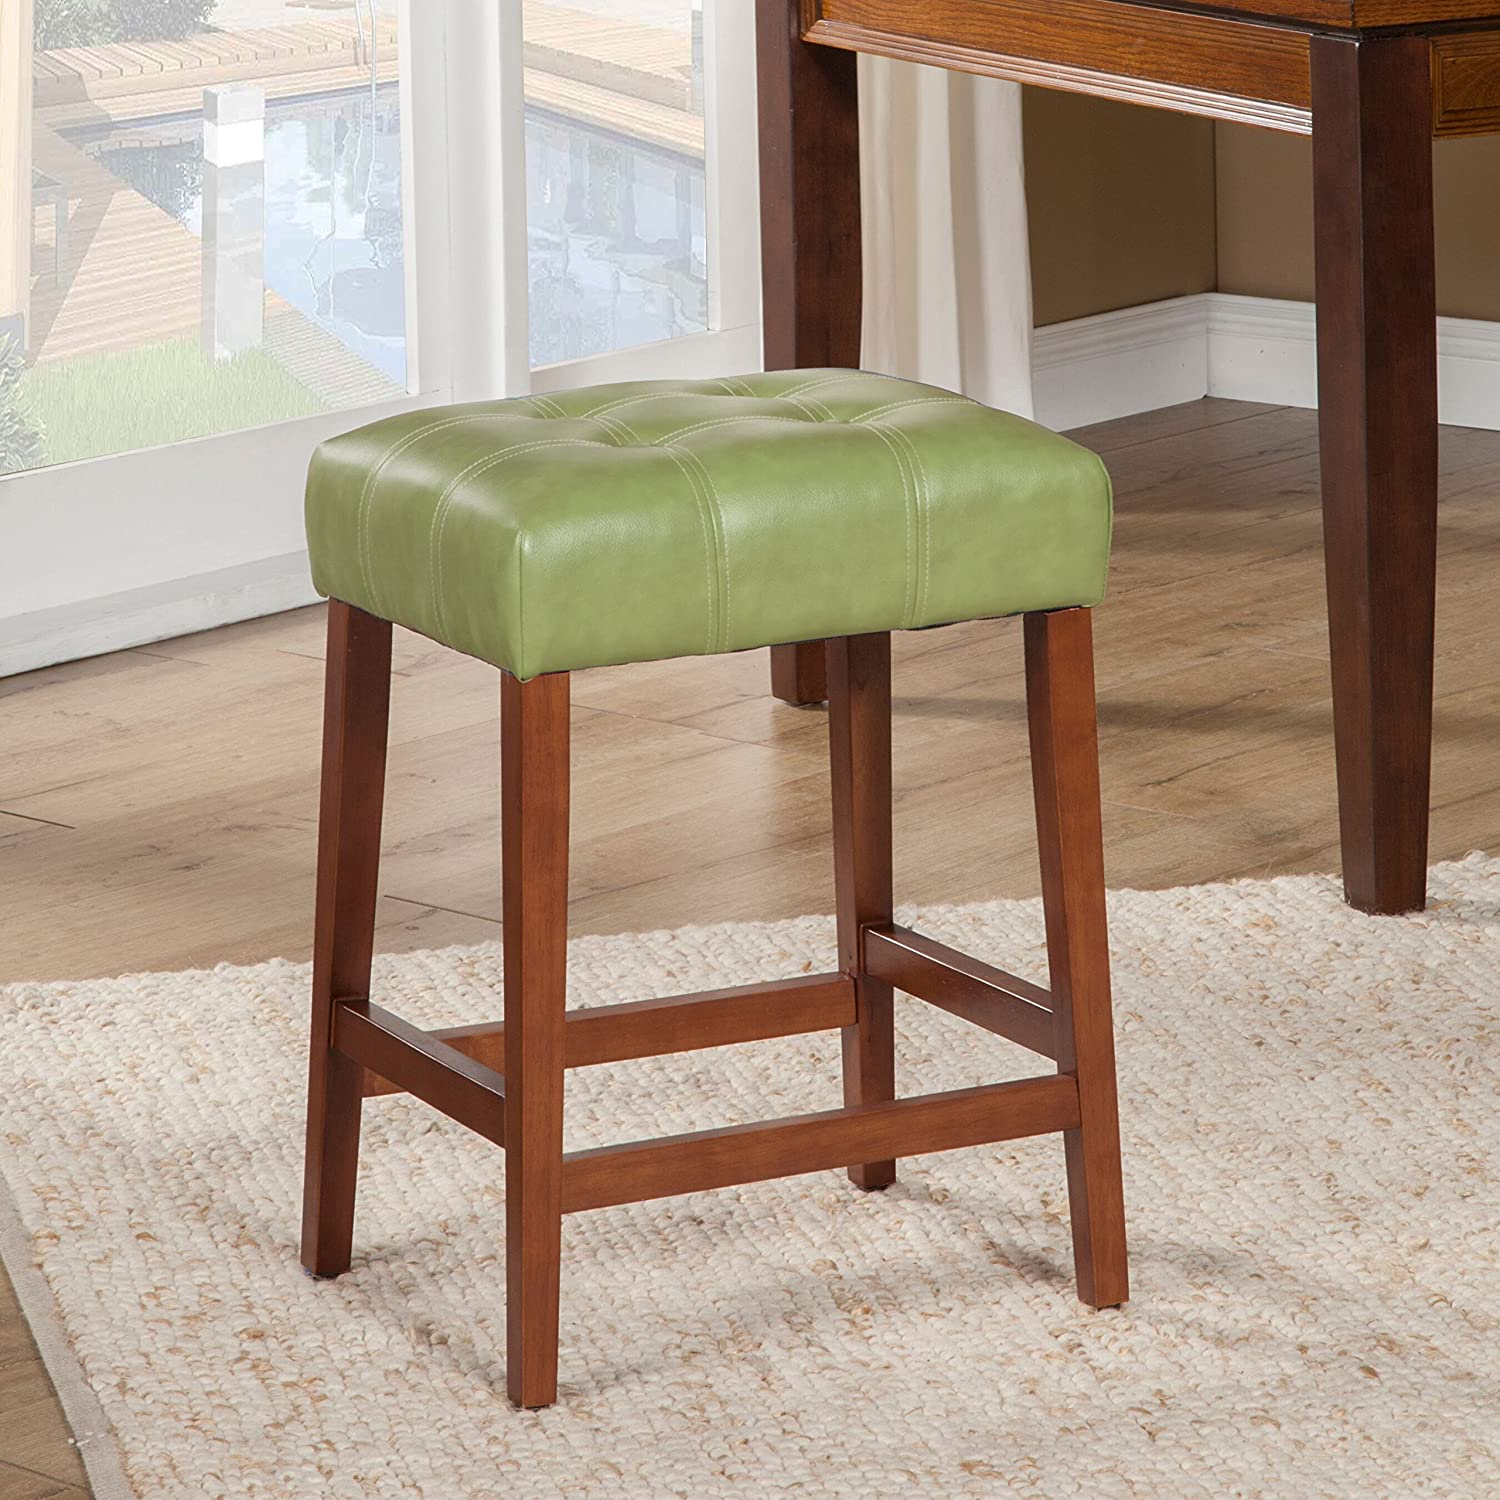 Kinfine Faux Leather Square Counter Stool, Moss Green